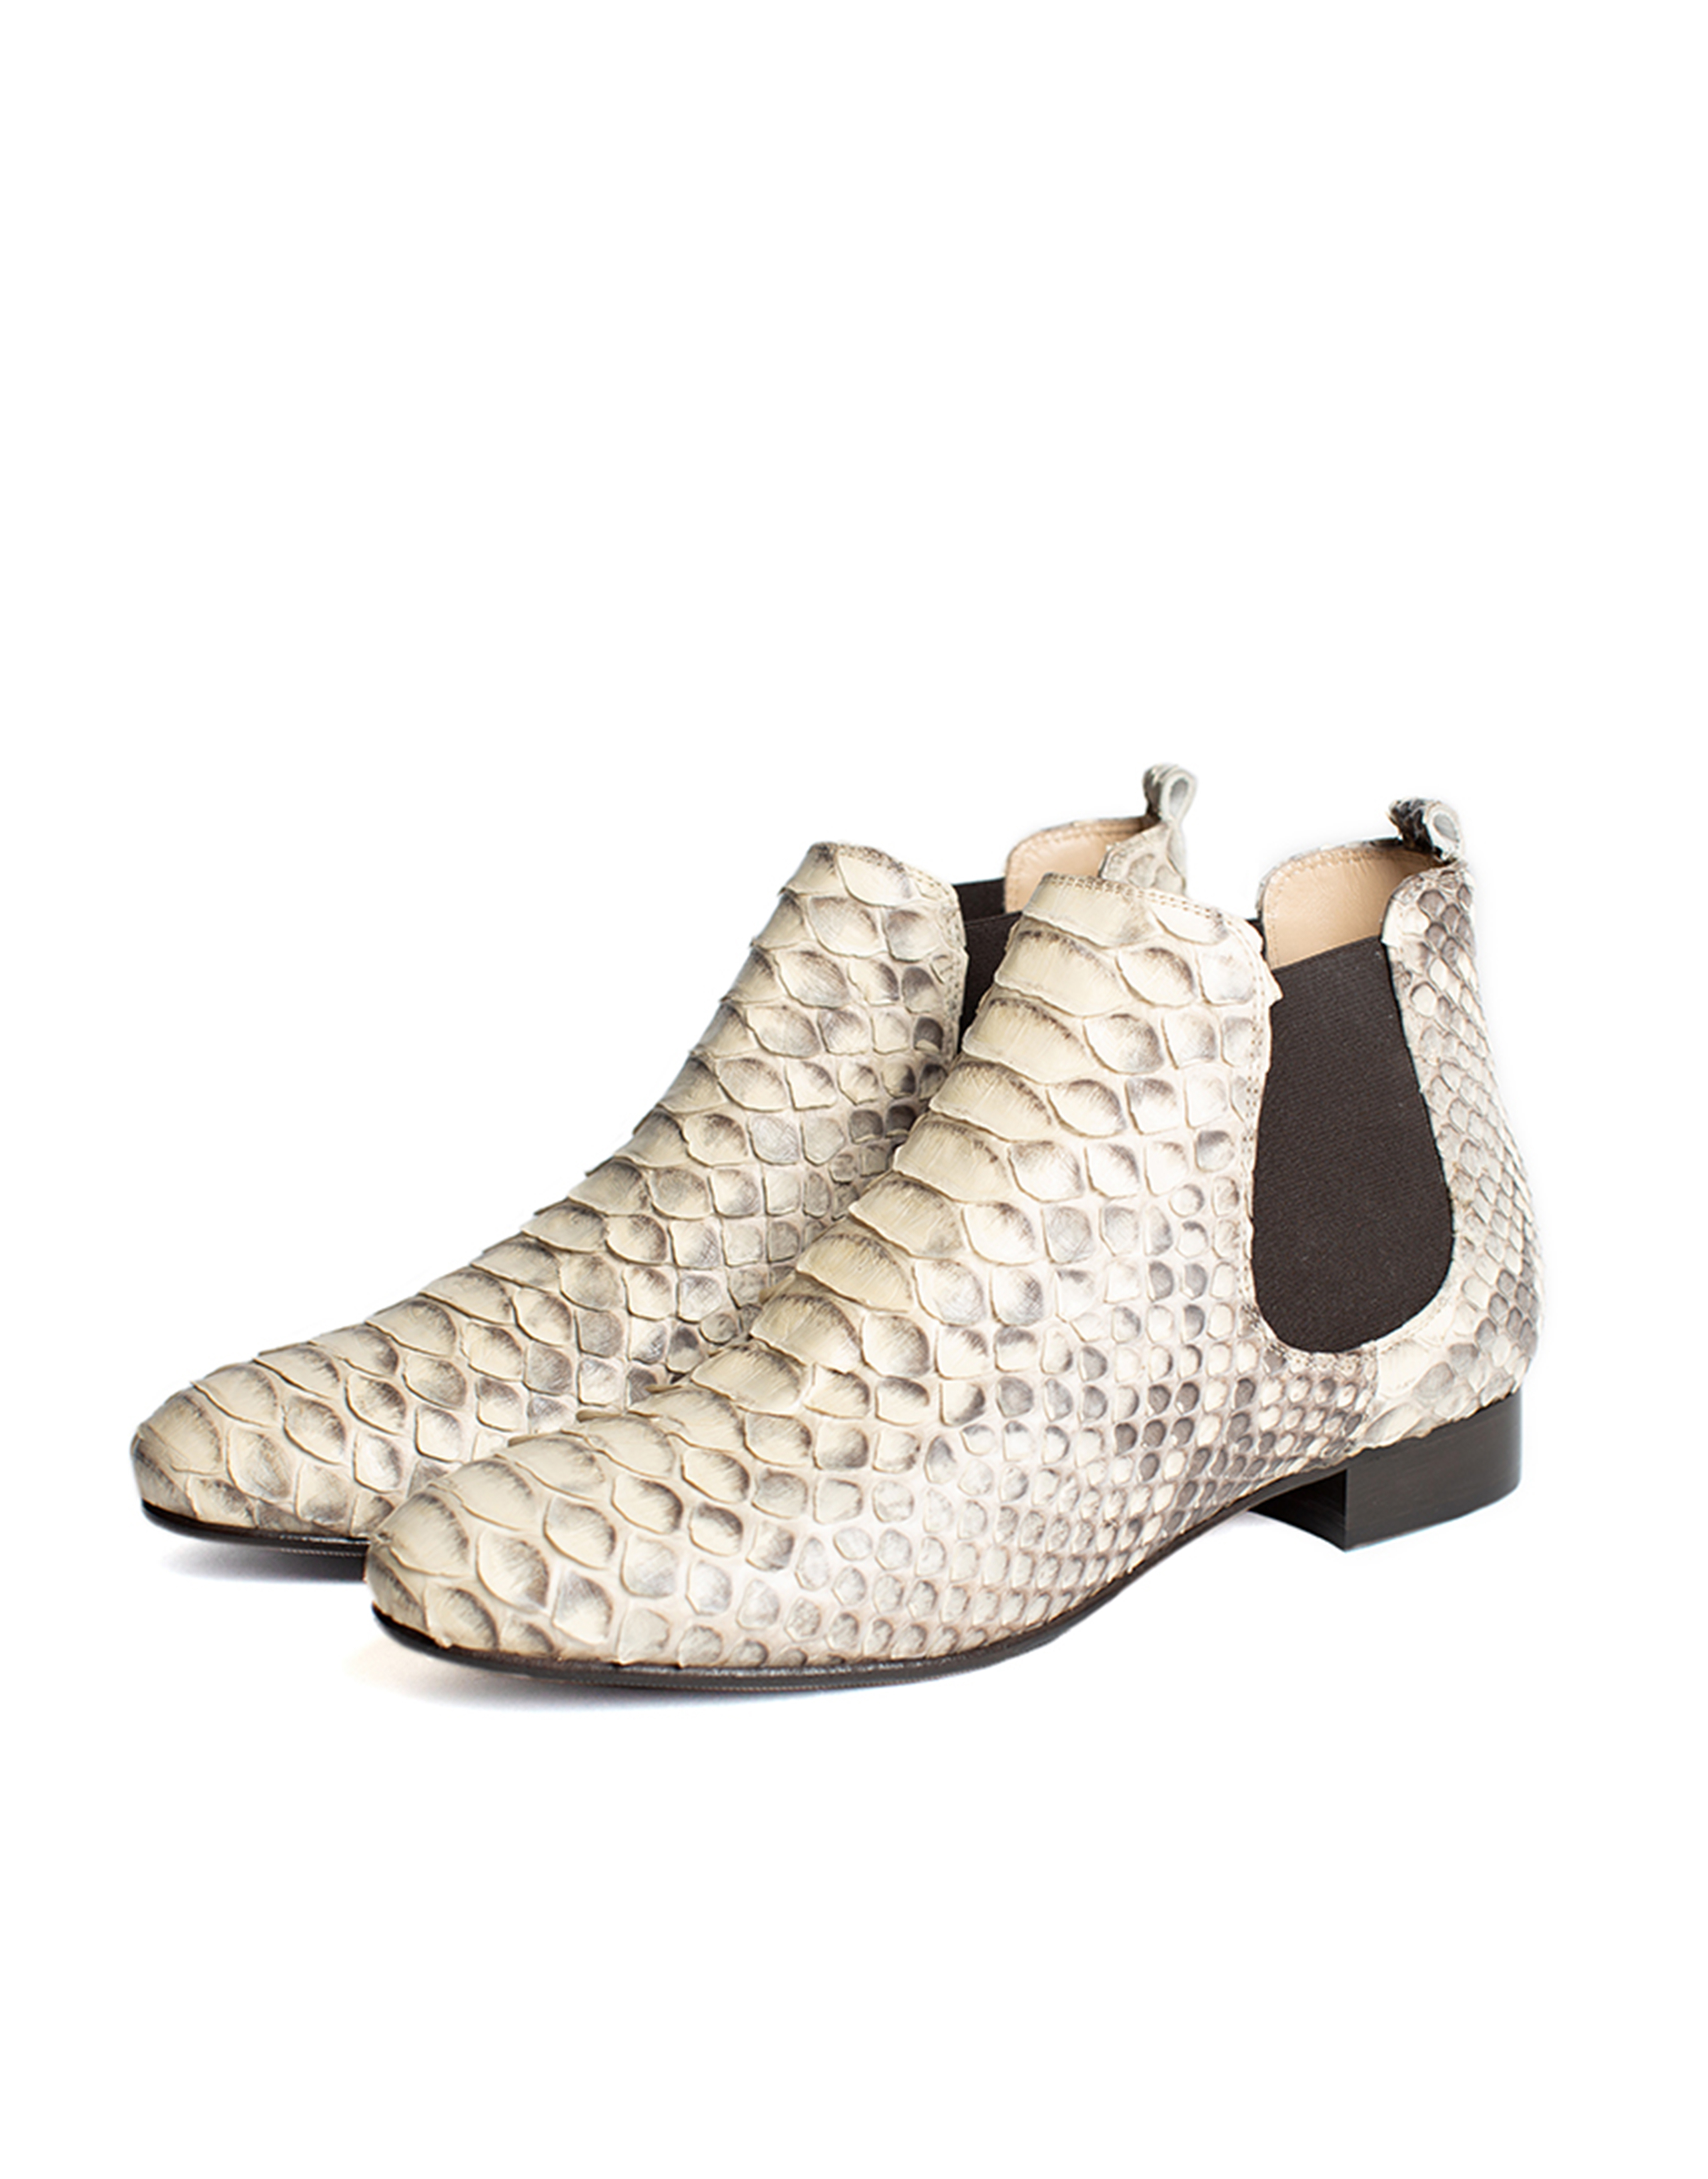 Extra Low Ankle Boots, python